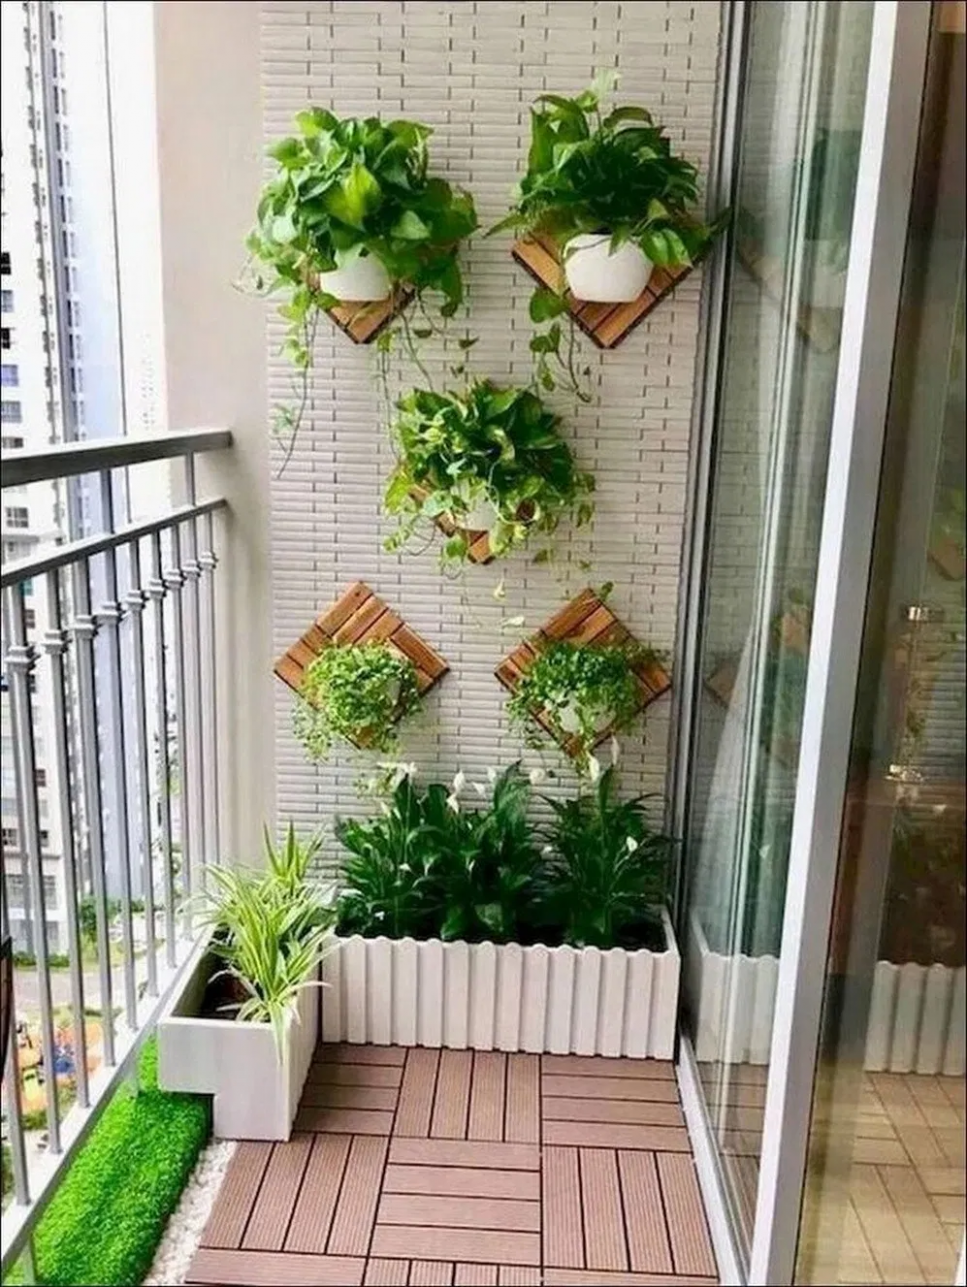 8 classy and simple apartment balcony decorating ideas 8 in 8 ...